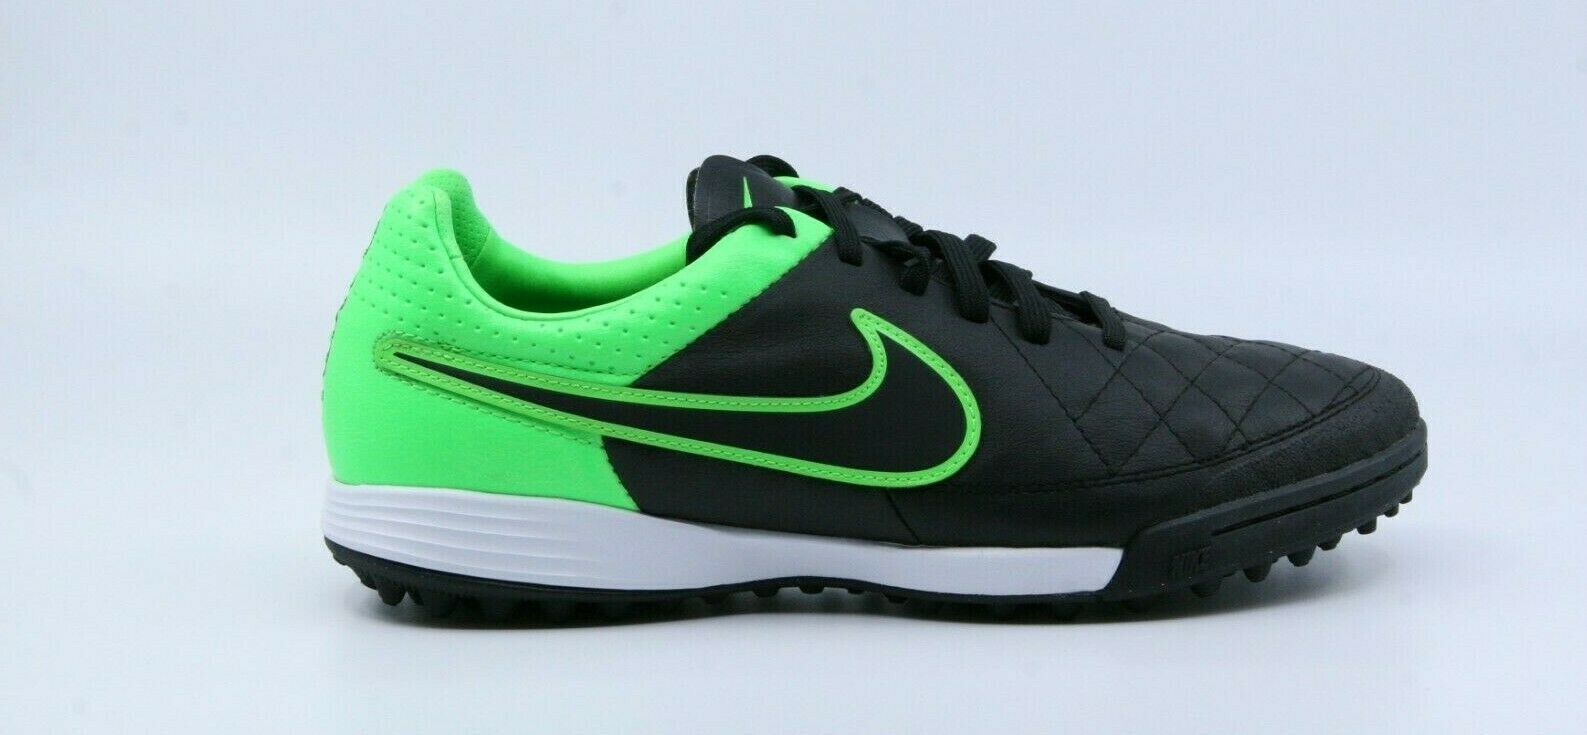 Nike Tiempo Legacy TF Men's Black Green Turf Soccer shoes Size 6.5 631517-003